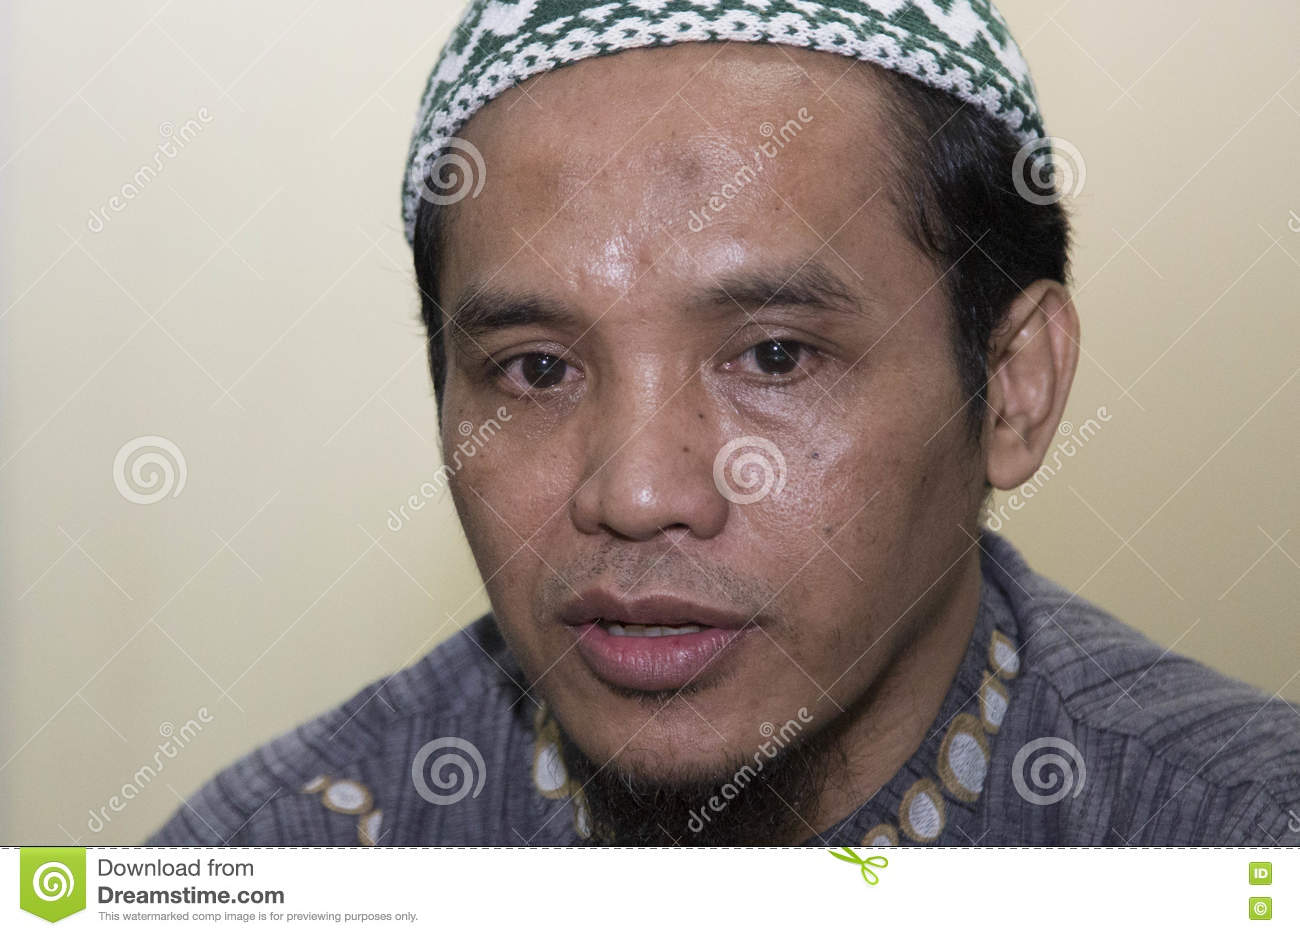 Ramadan Discussion About Islam Role en paz